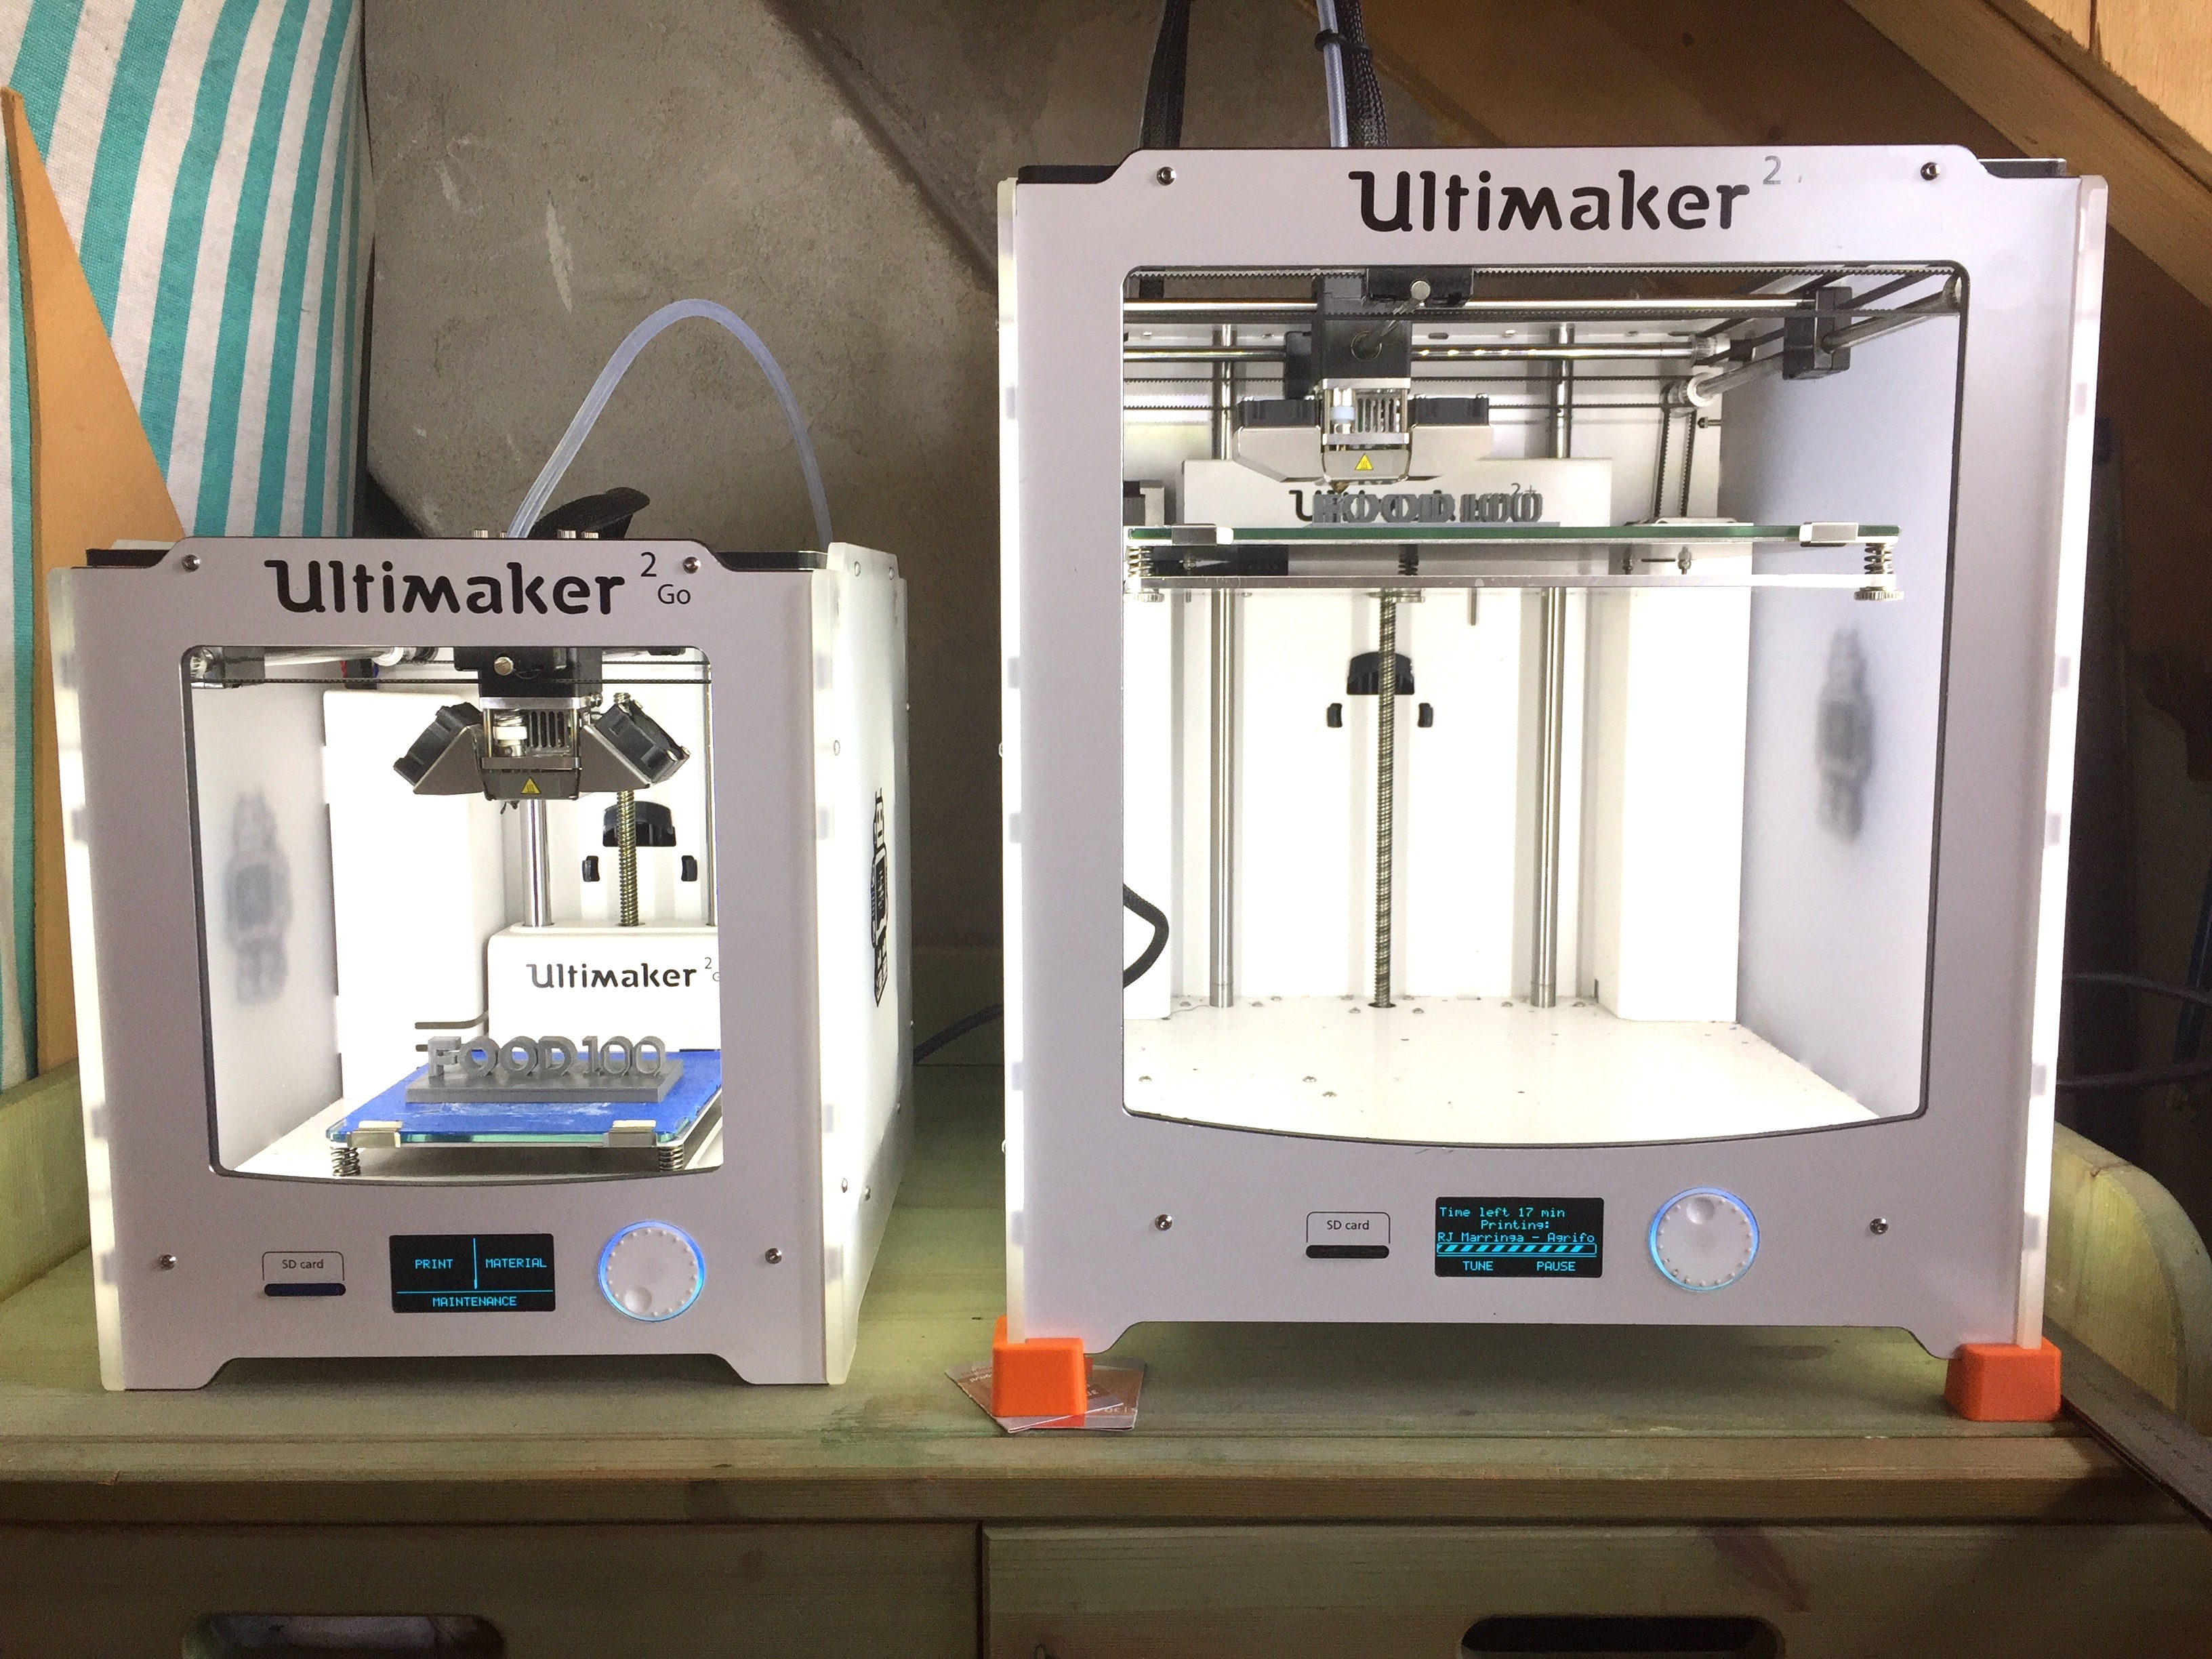 FOOD100 3D printing in progress with my Ultimaker2+